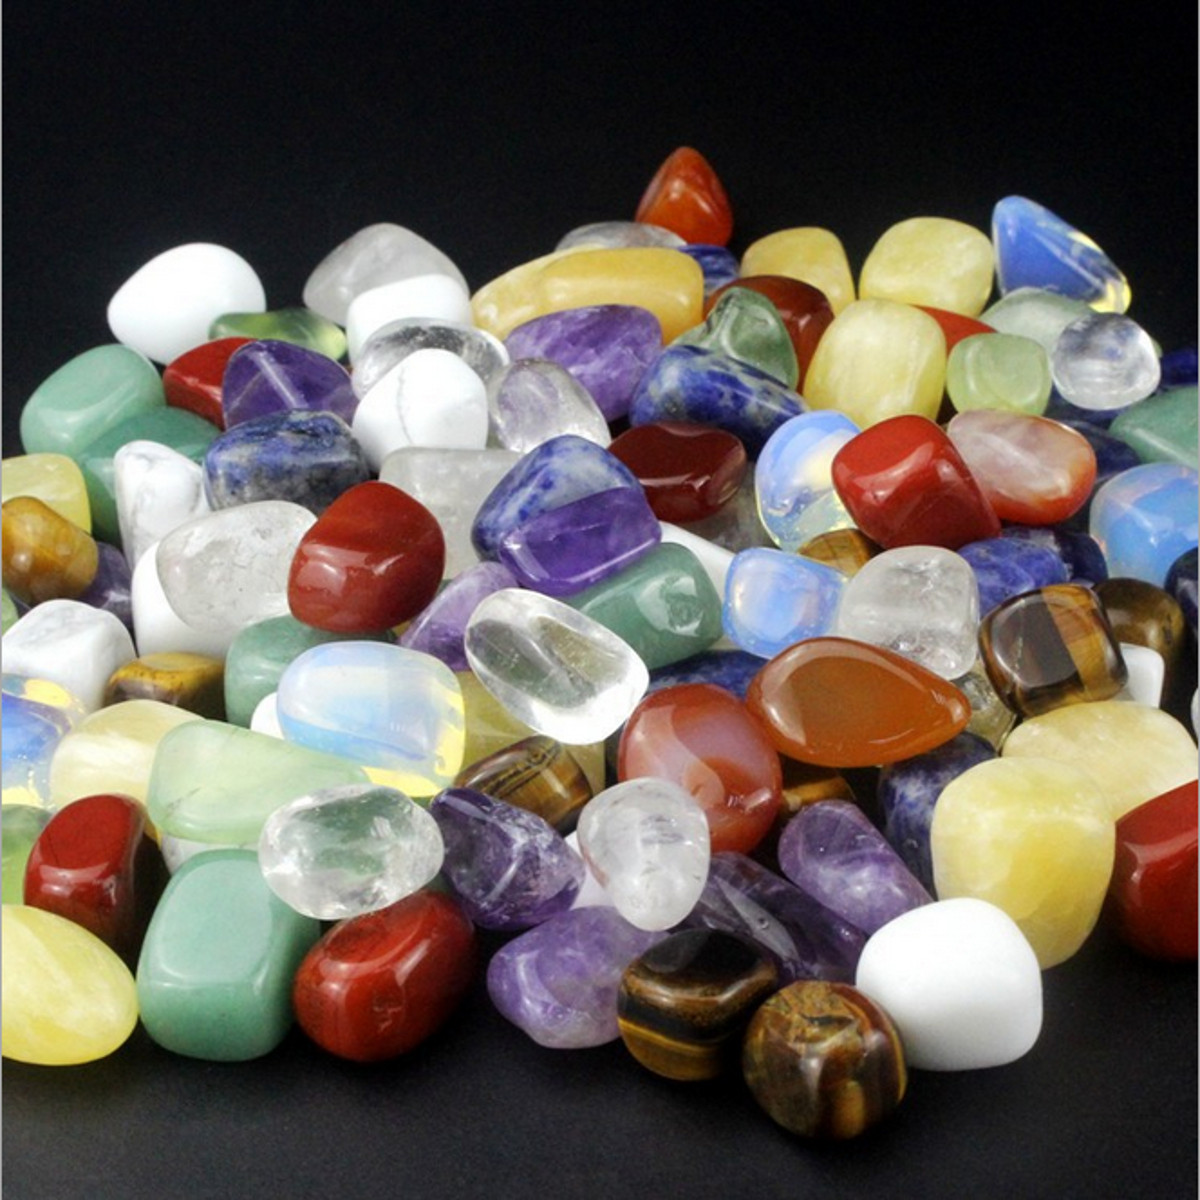 1/2 lb Semi Natural Crystal Stone Decoration Decor Healing Health